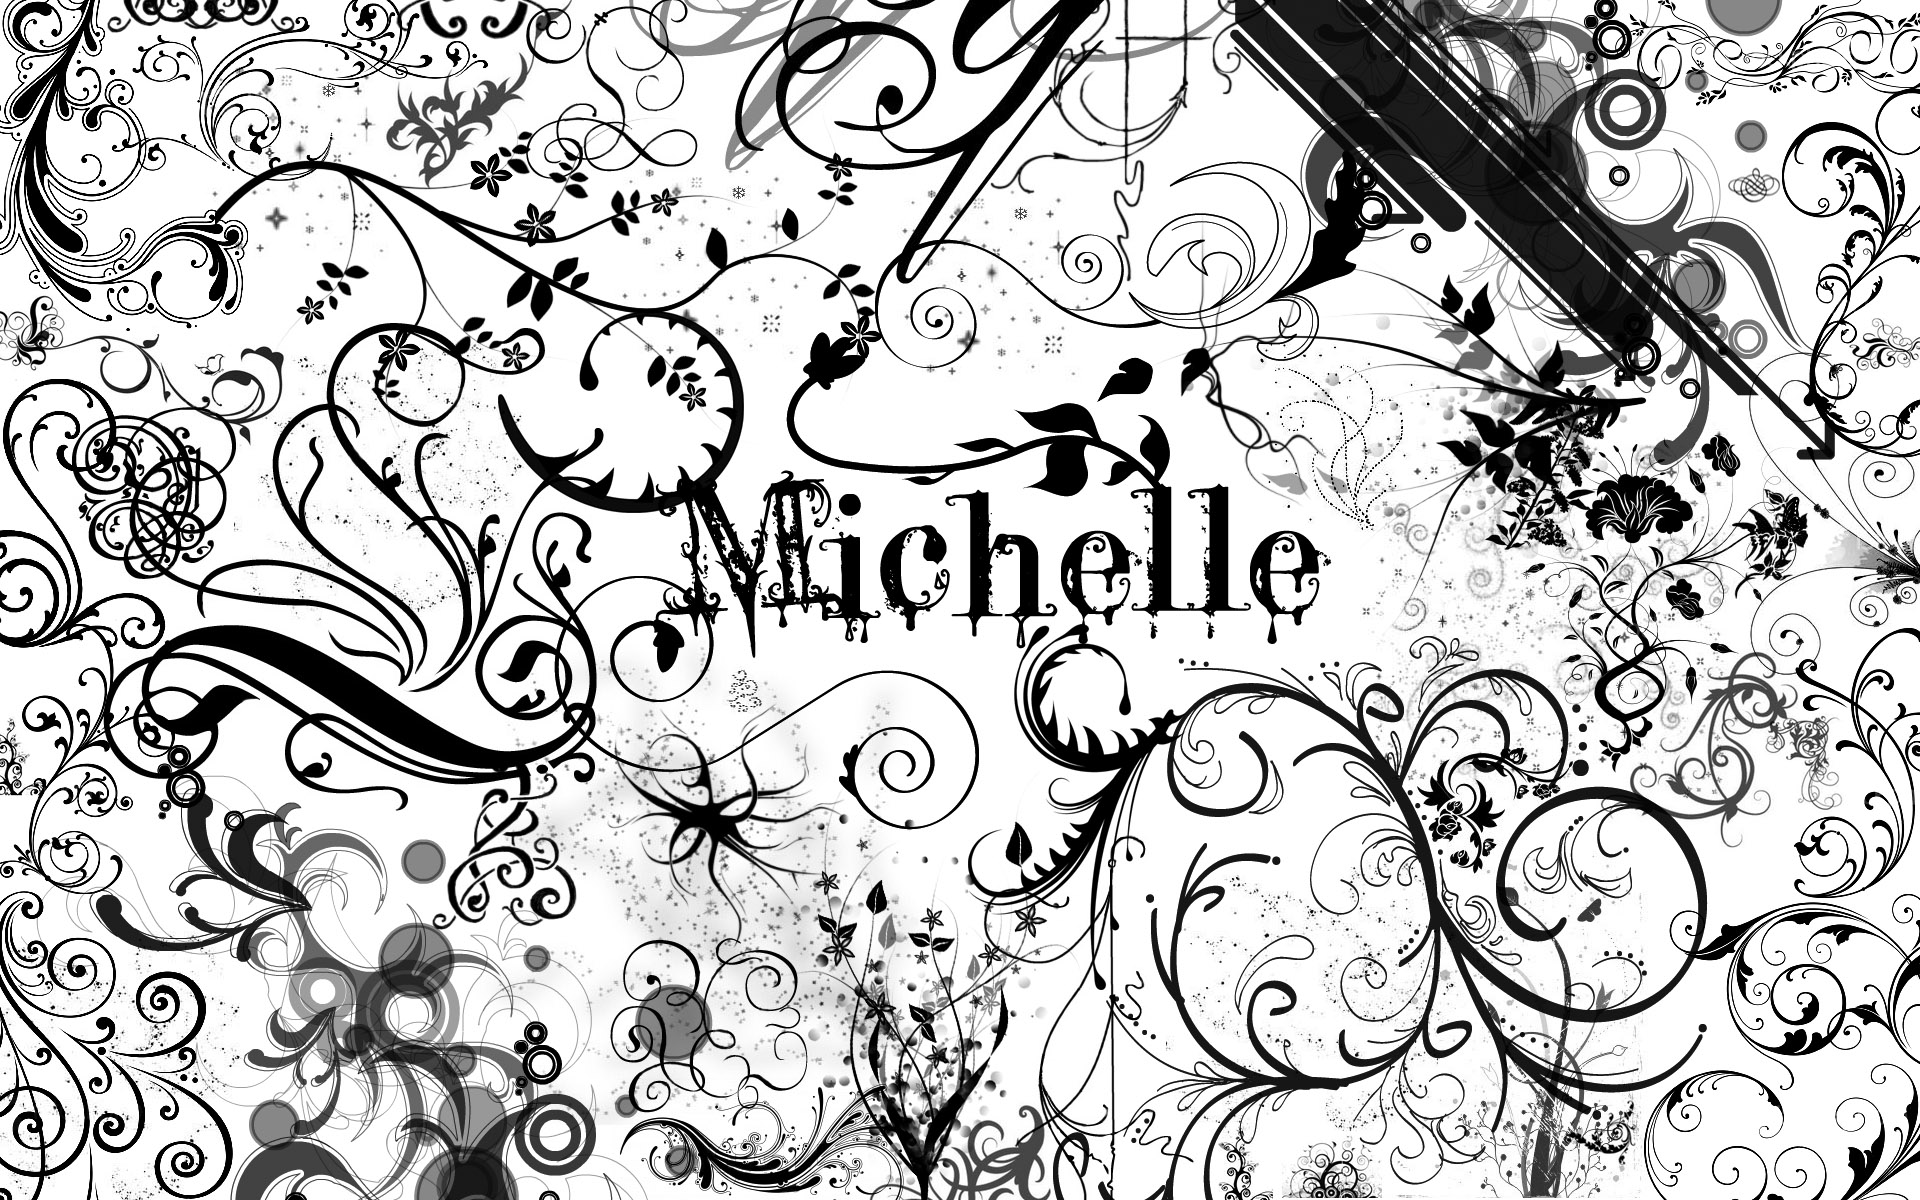 48] Michelle Name Wallpaper on WallpaperSafari 1920x1200